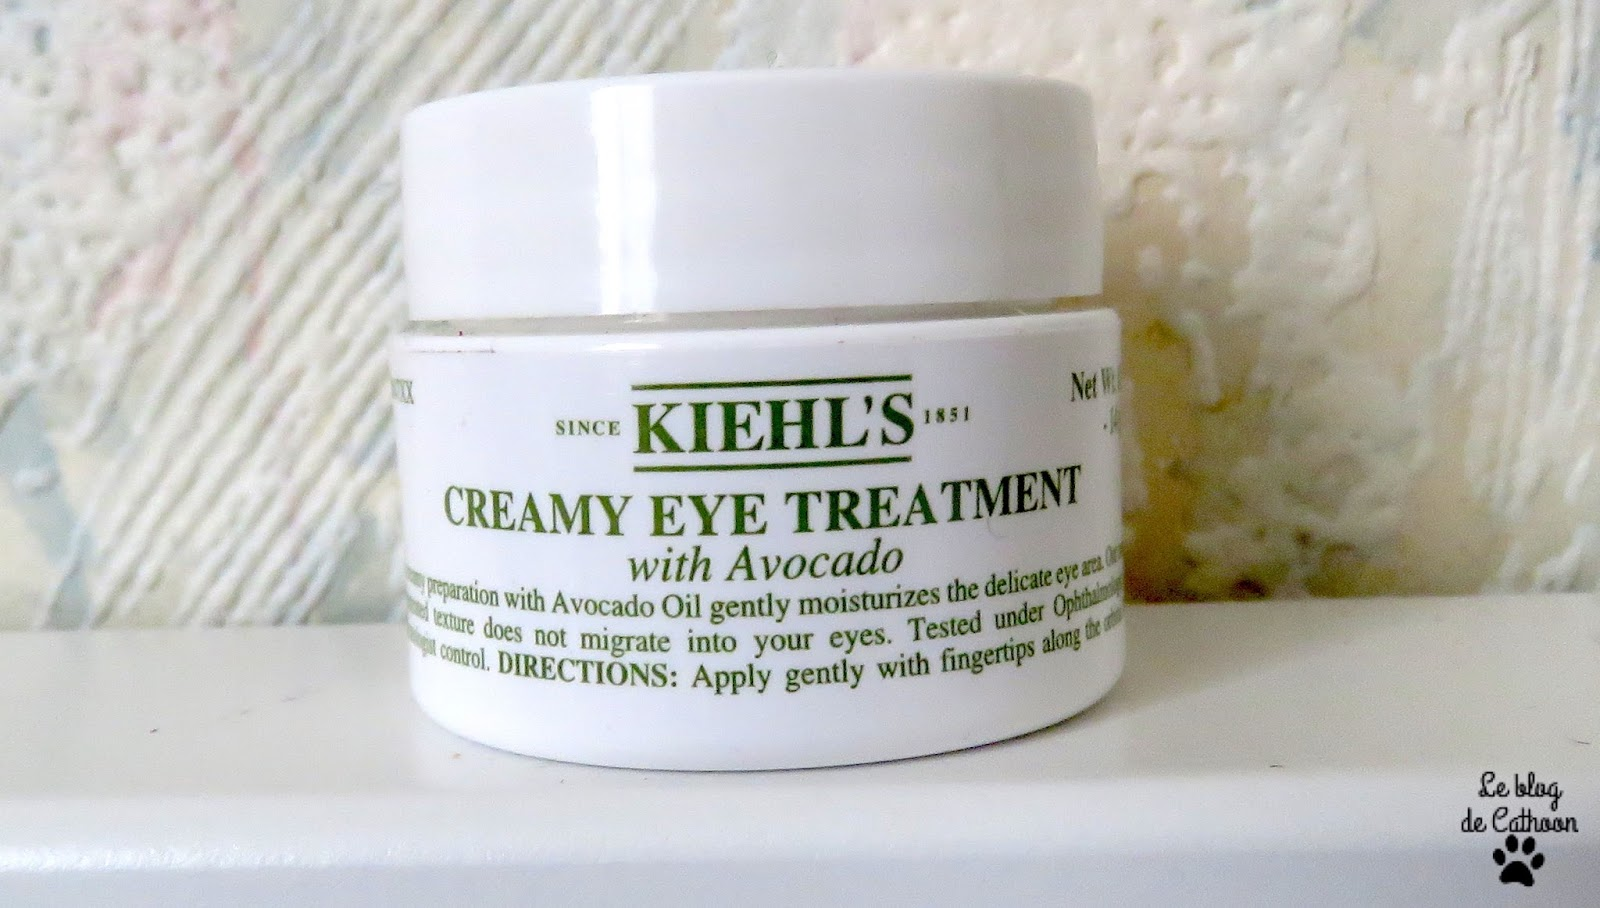 Creamy Eye Treatment with Avocado de Kiehl's